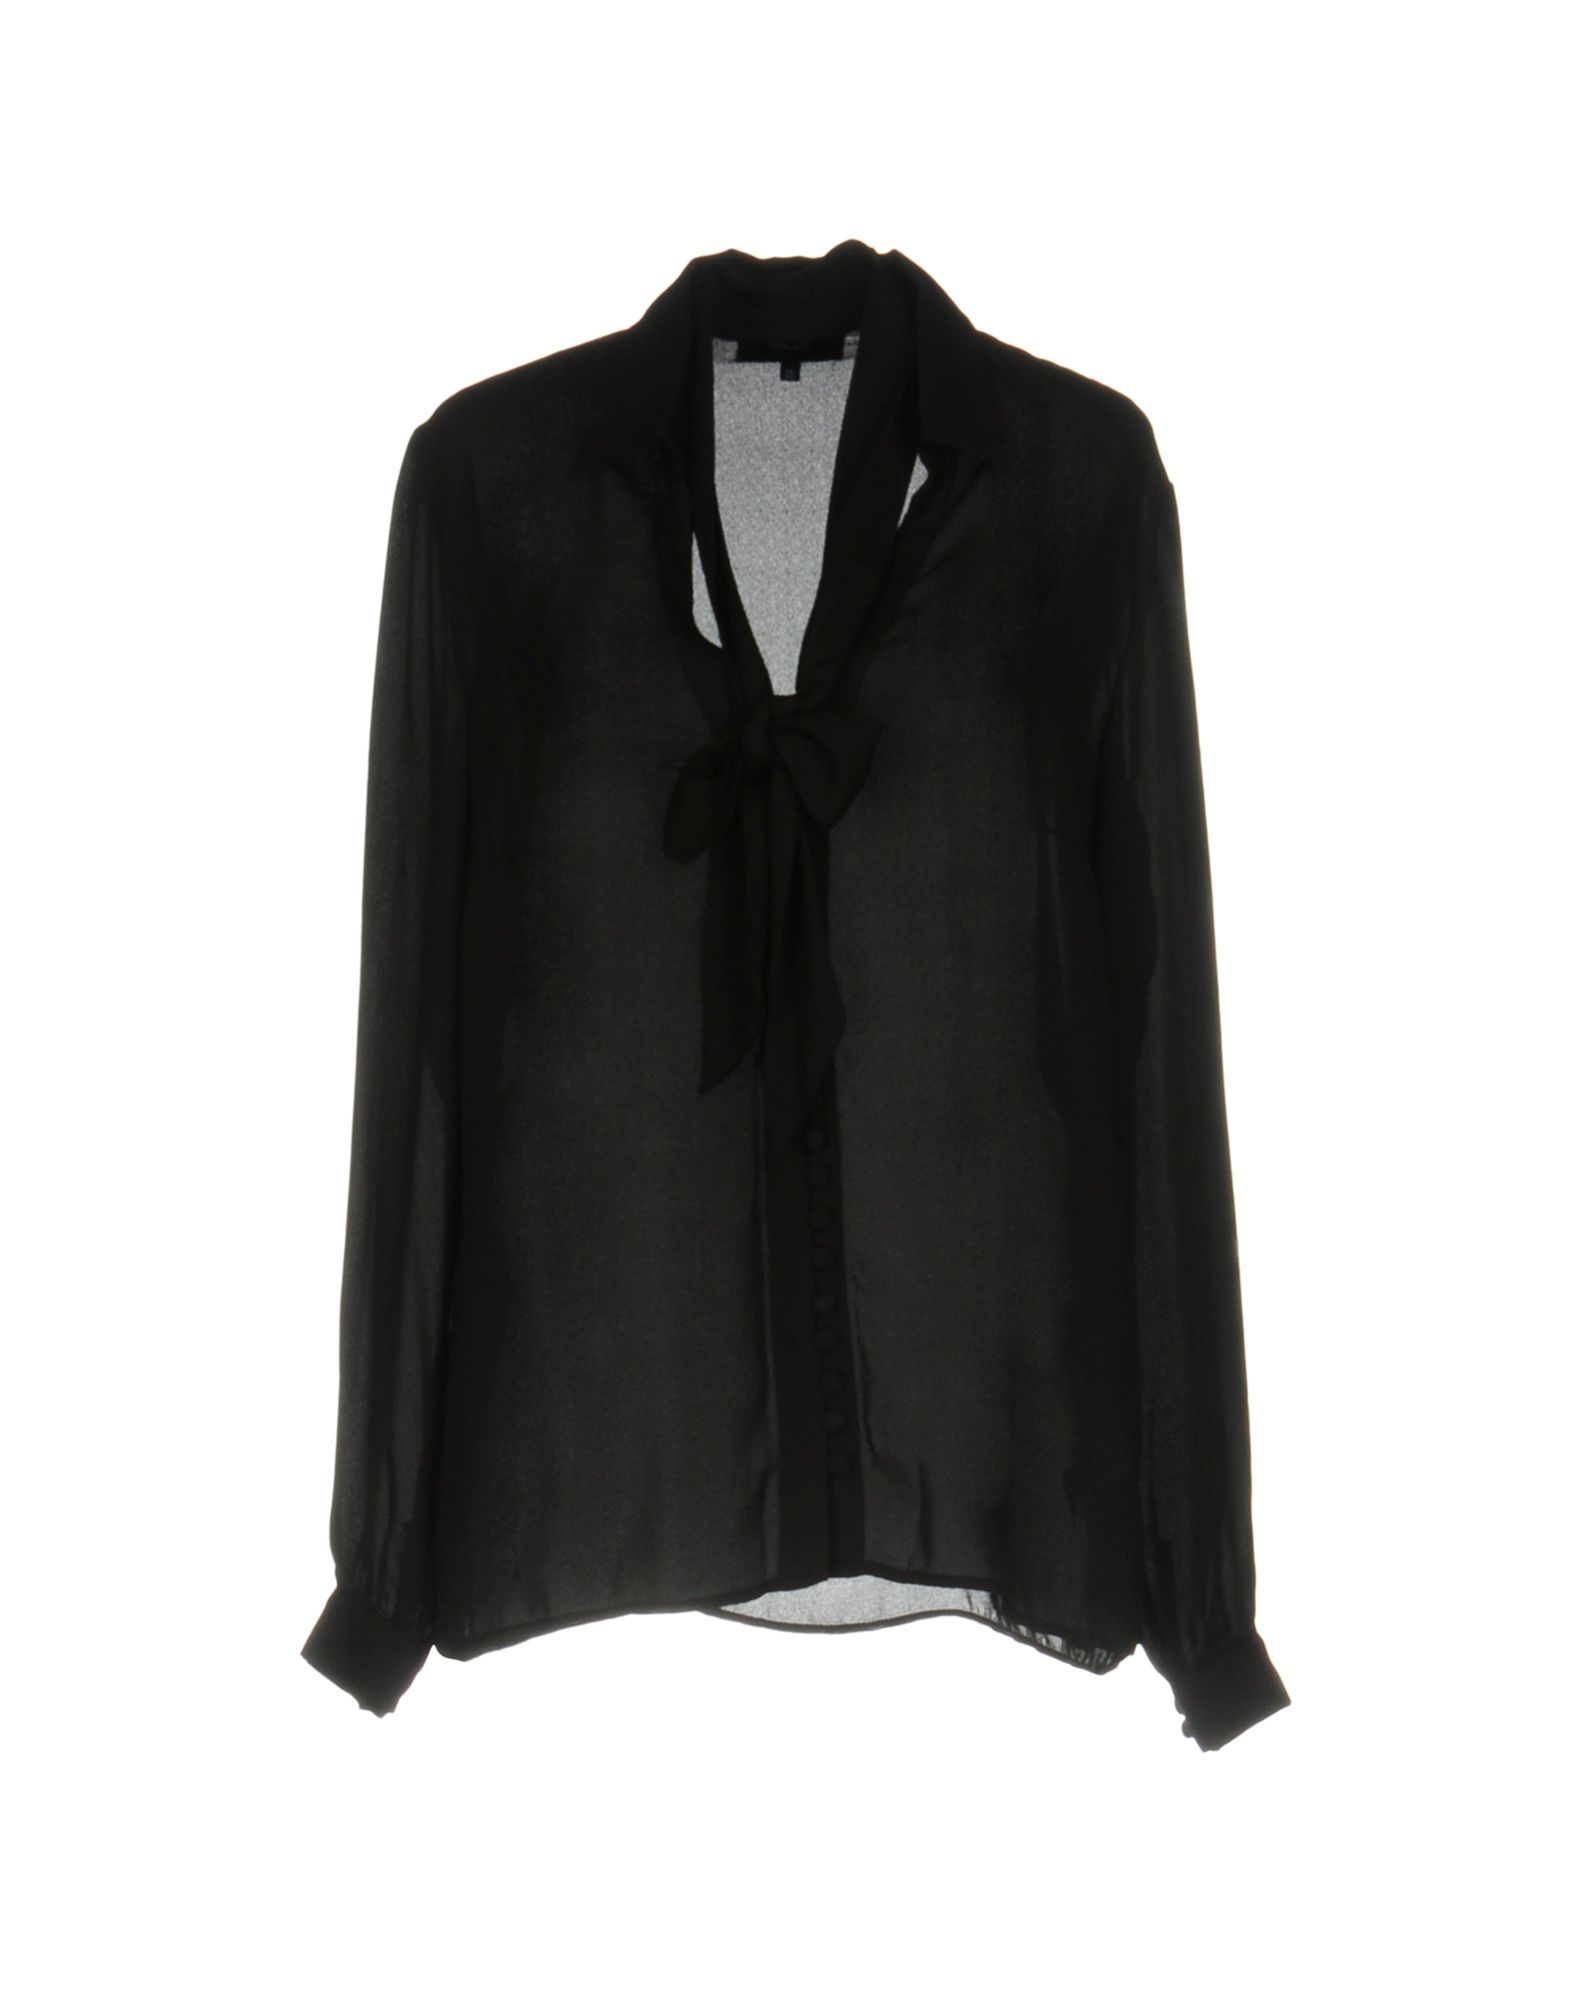 GOLDIE LONDON Solid Color Shirts & Blouses in Black